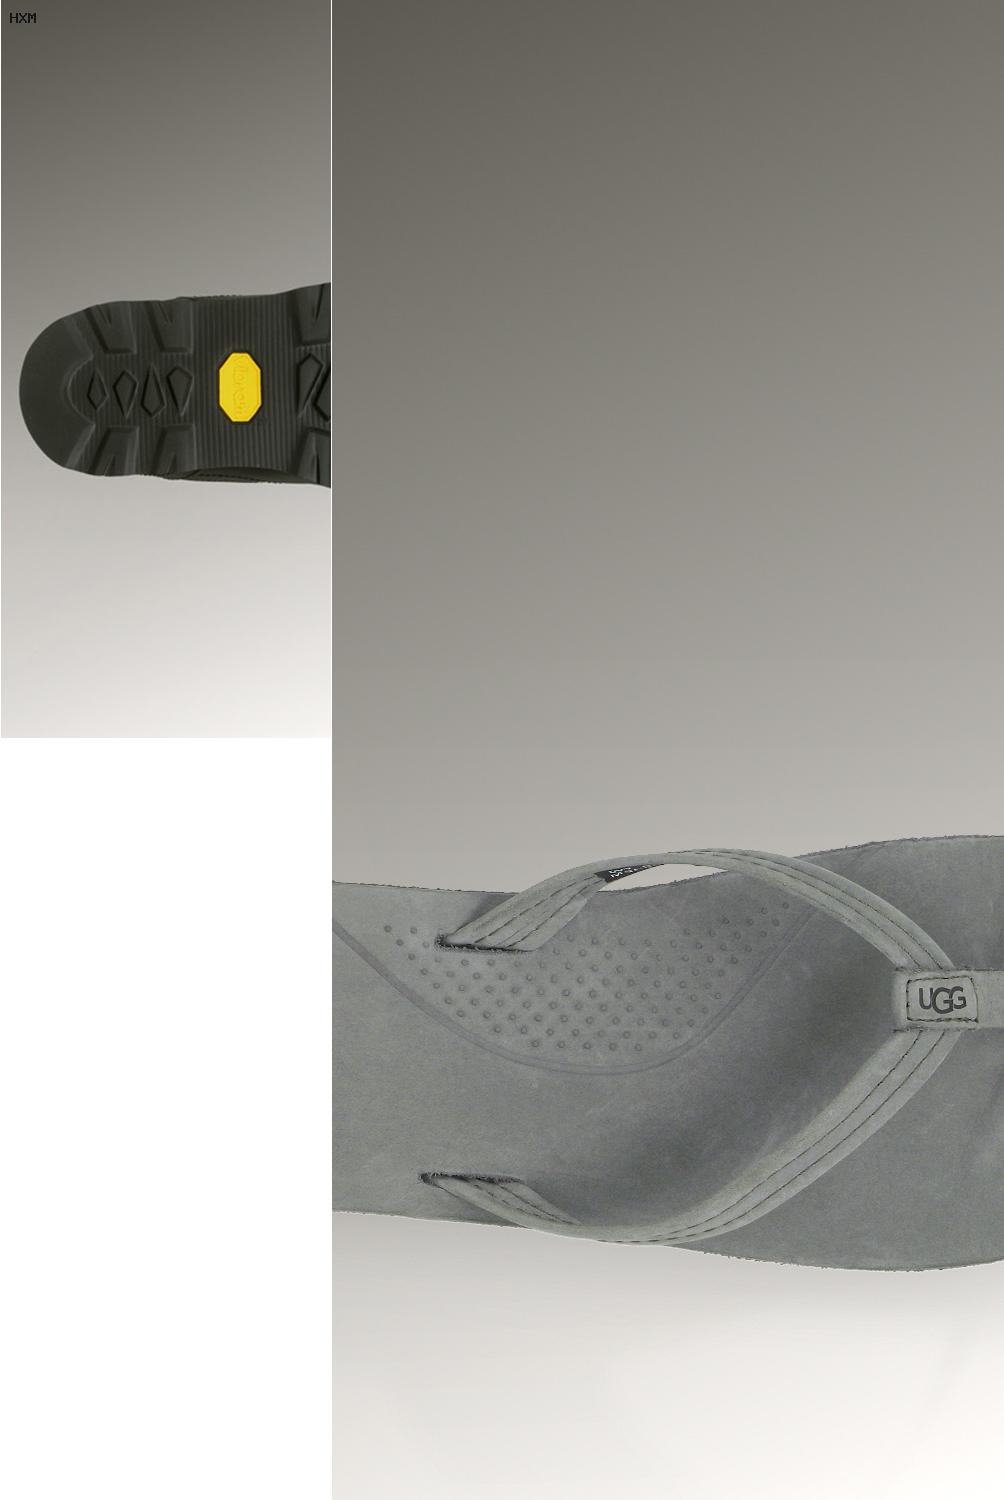 ugg boots mexico